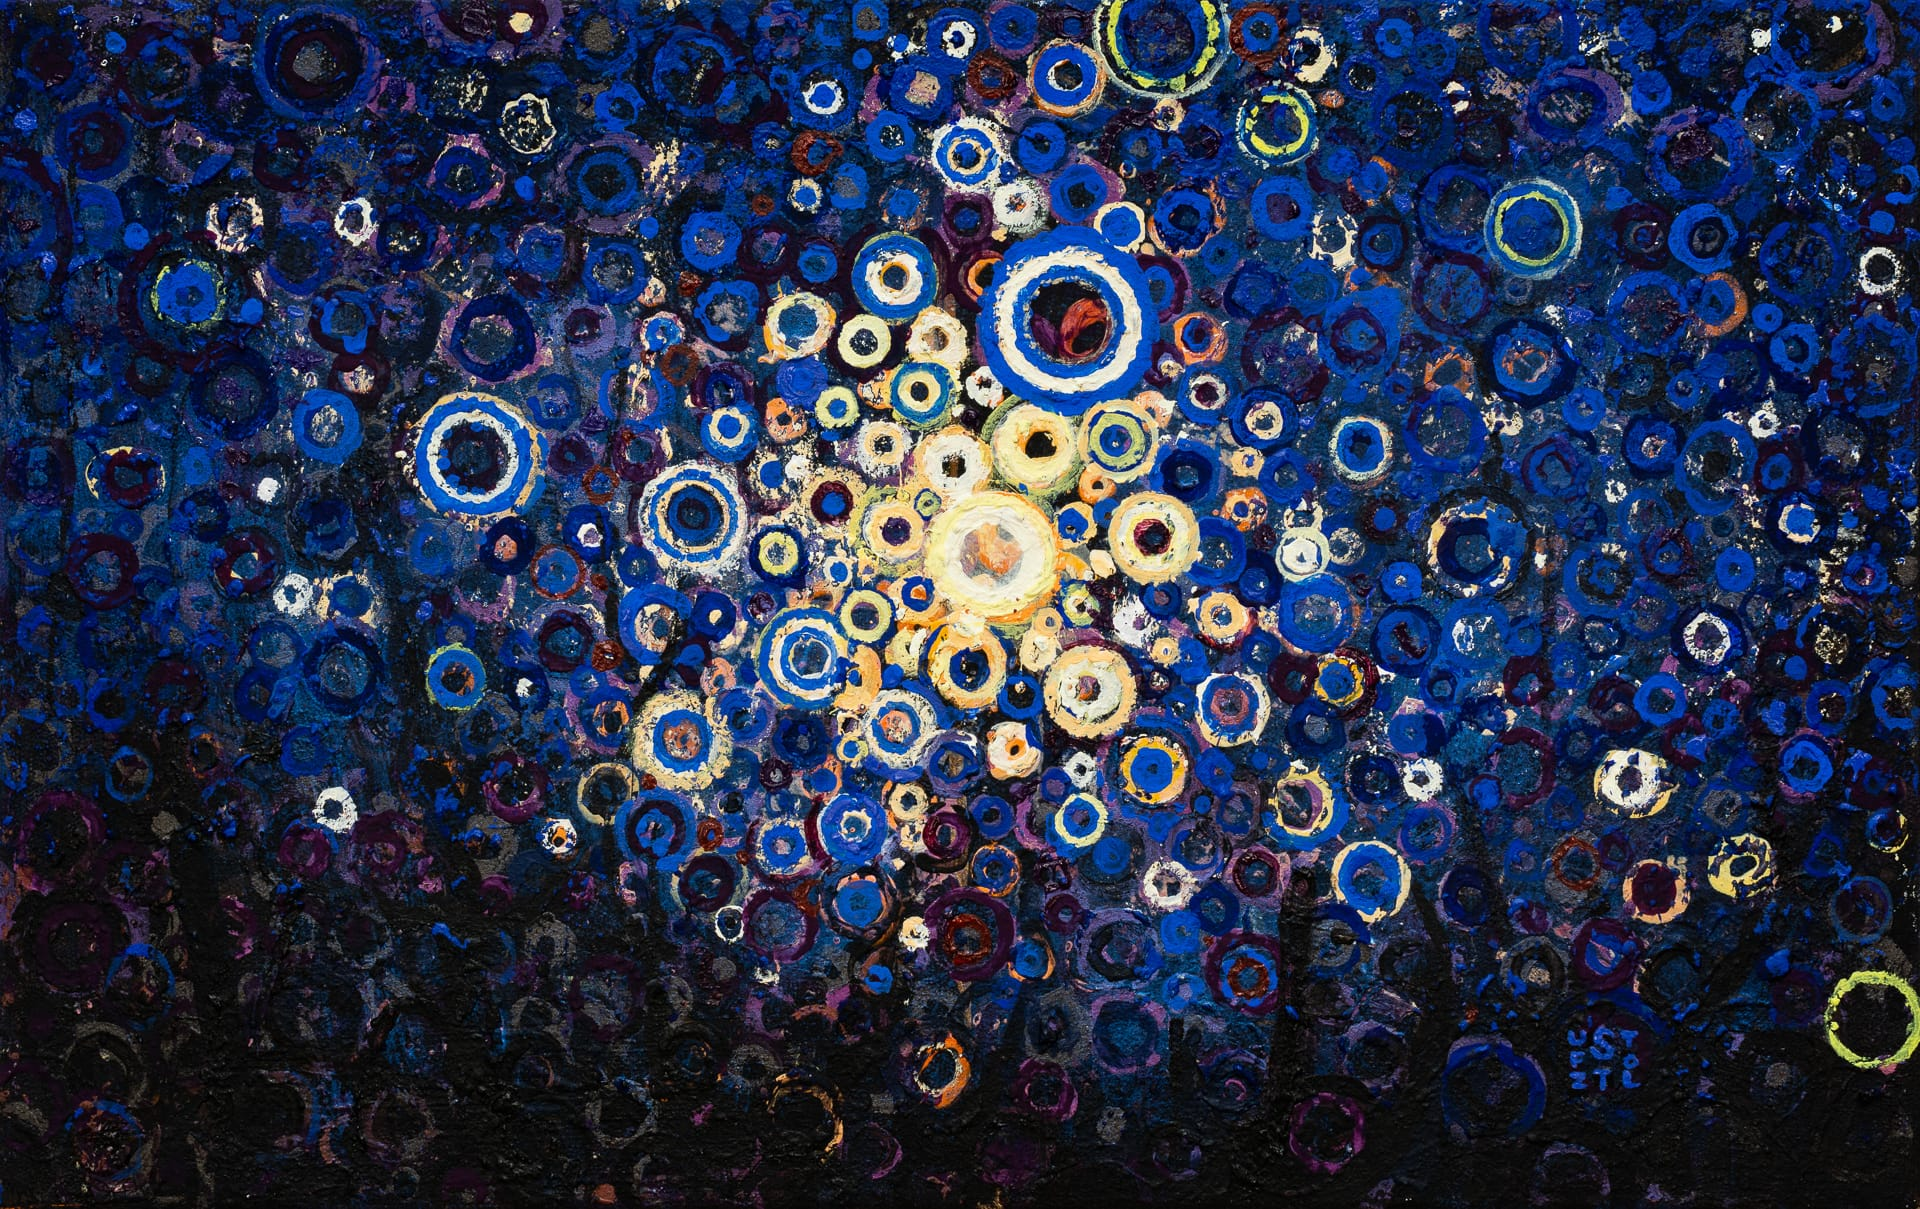 Gently Sparkling | Inspired by Traditional Japanese Sparklers called Senko Hanabi | Old Light by Randall Stoltzfus | 12 by 19 inches | Acrylic dispersion on polymer canvas